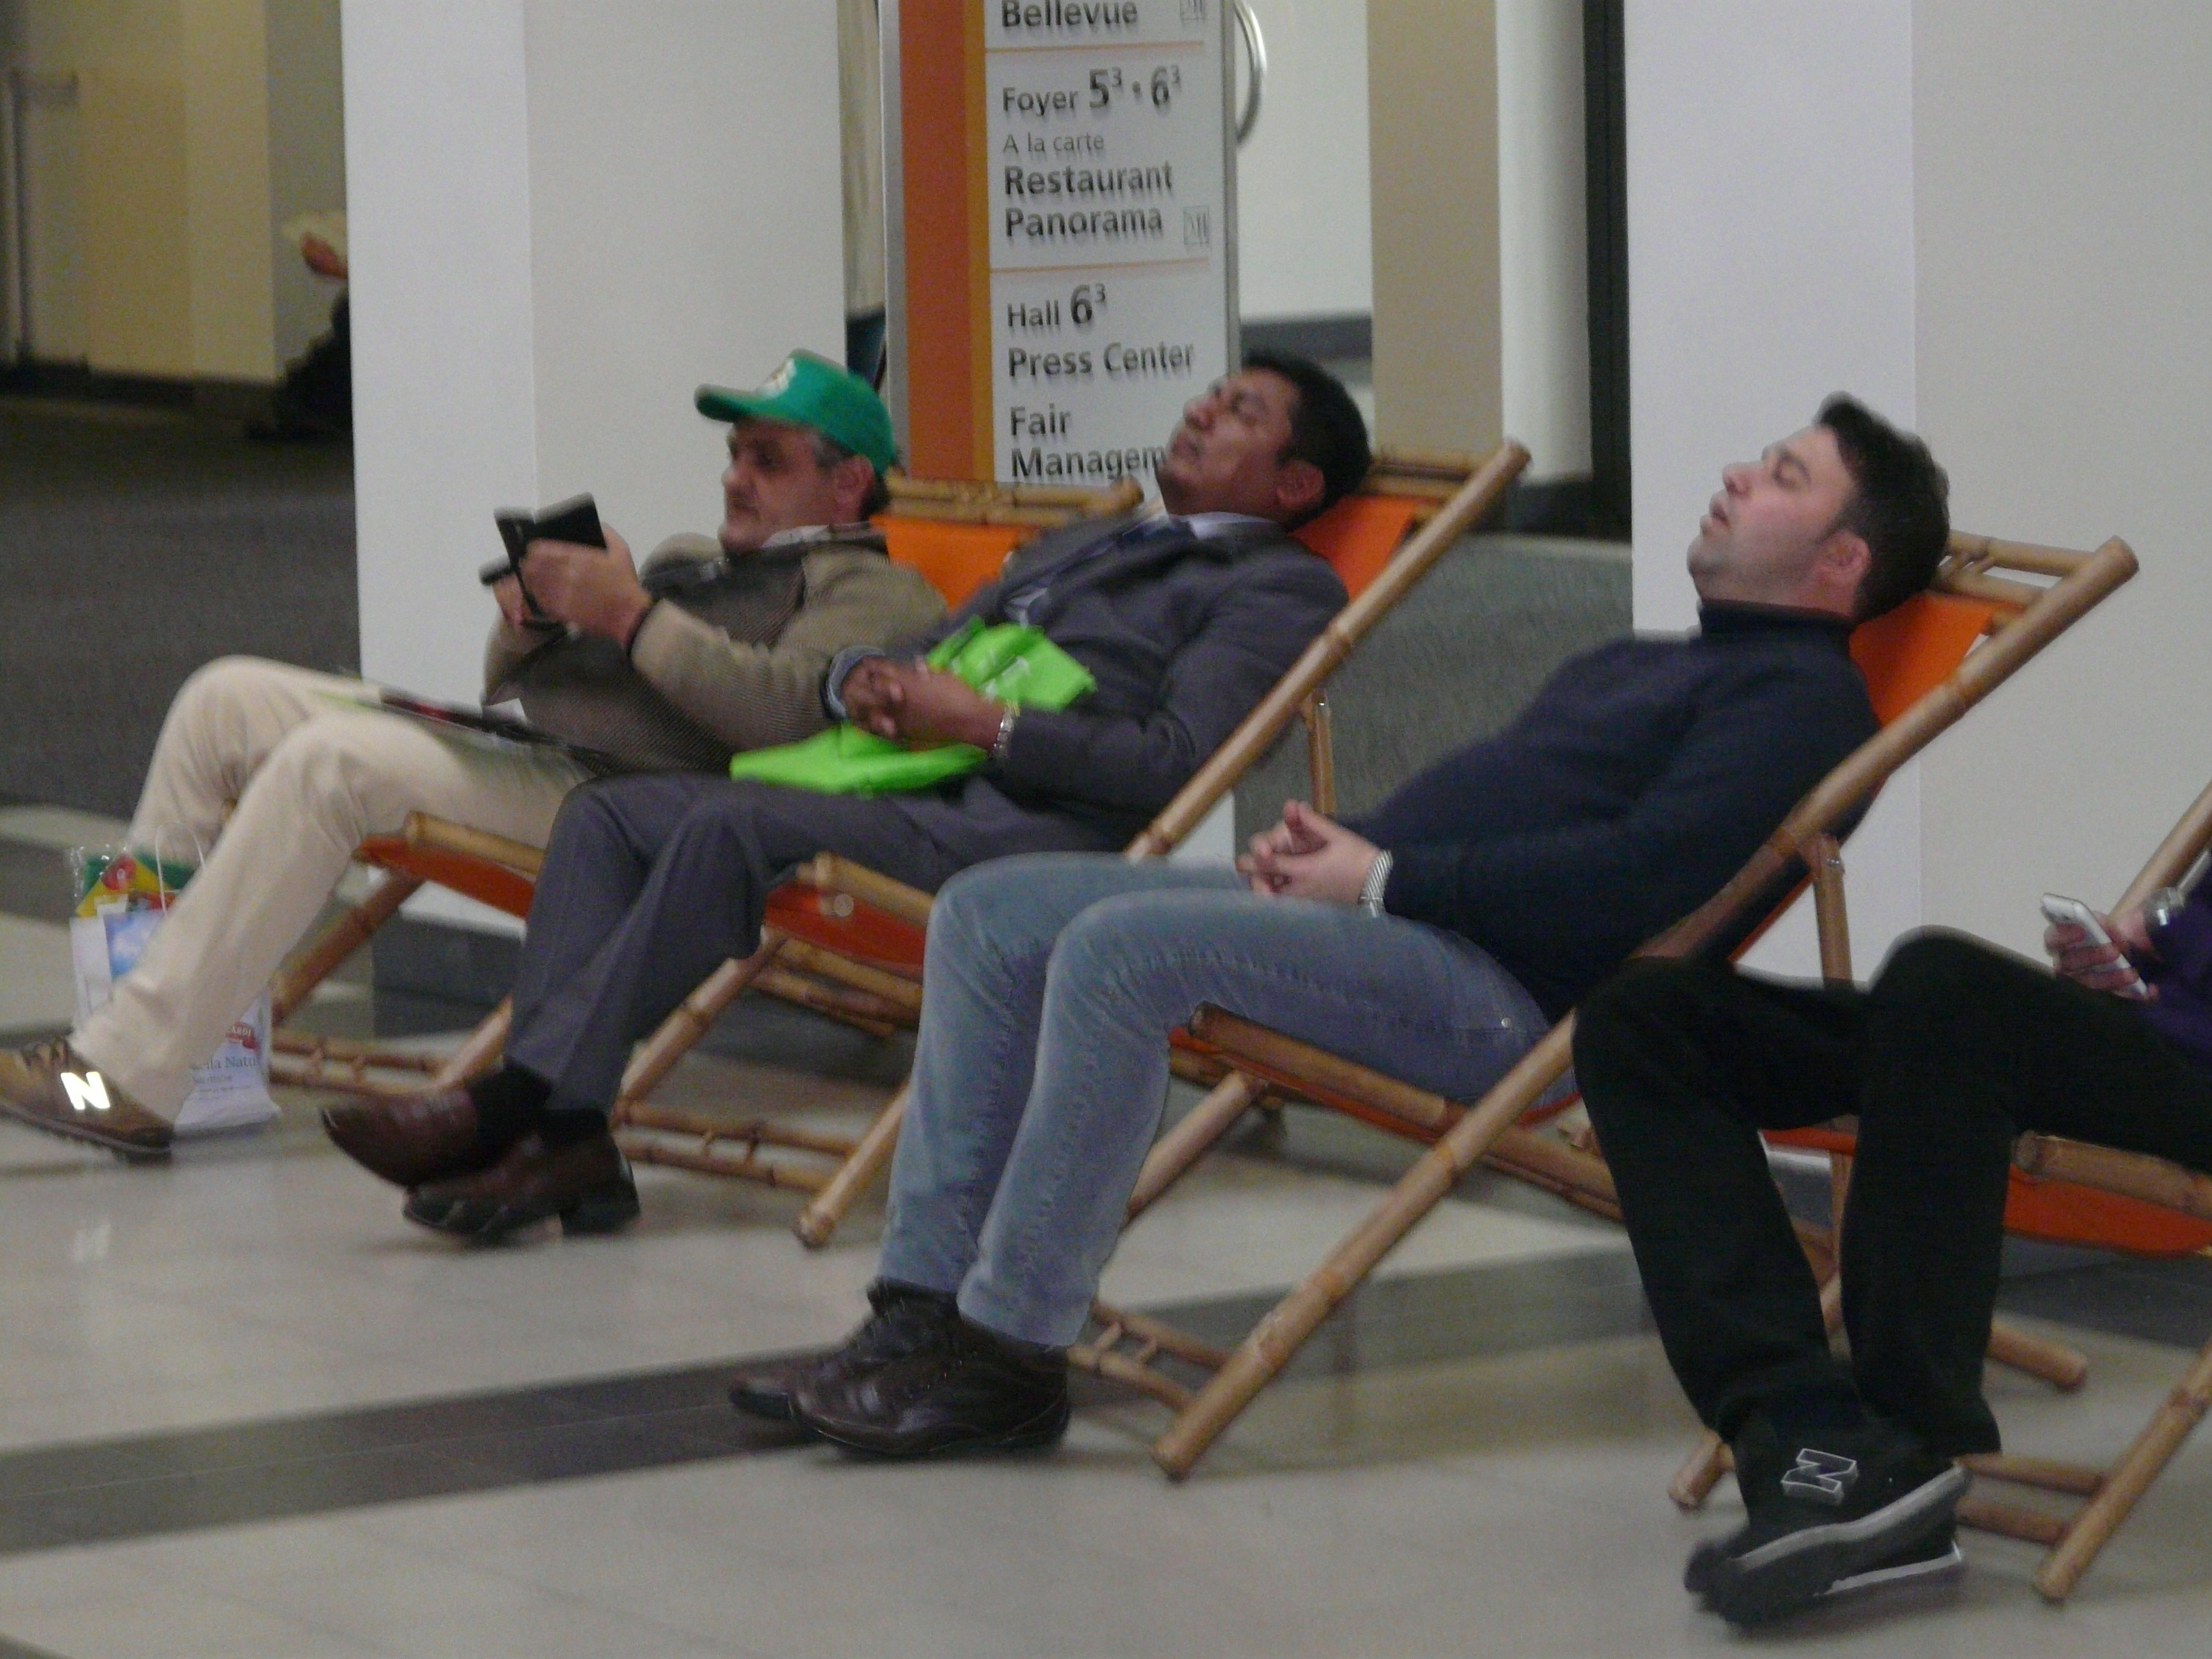 For some visitors to Messe Berlin, getting around 25 halls had obviously been tiring